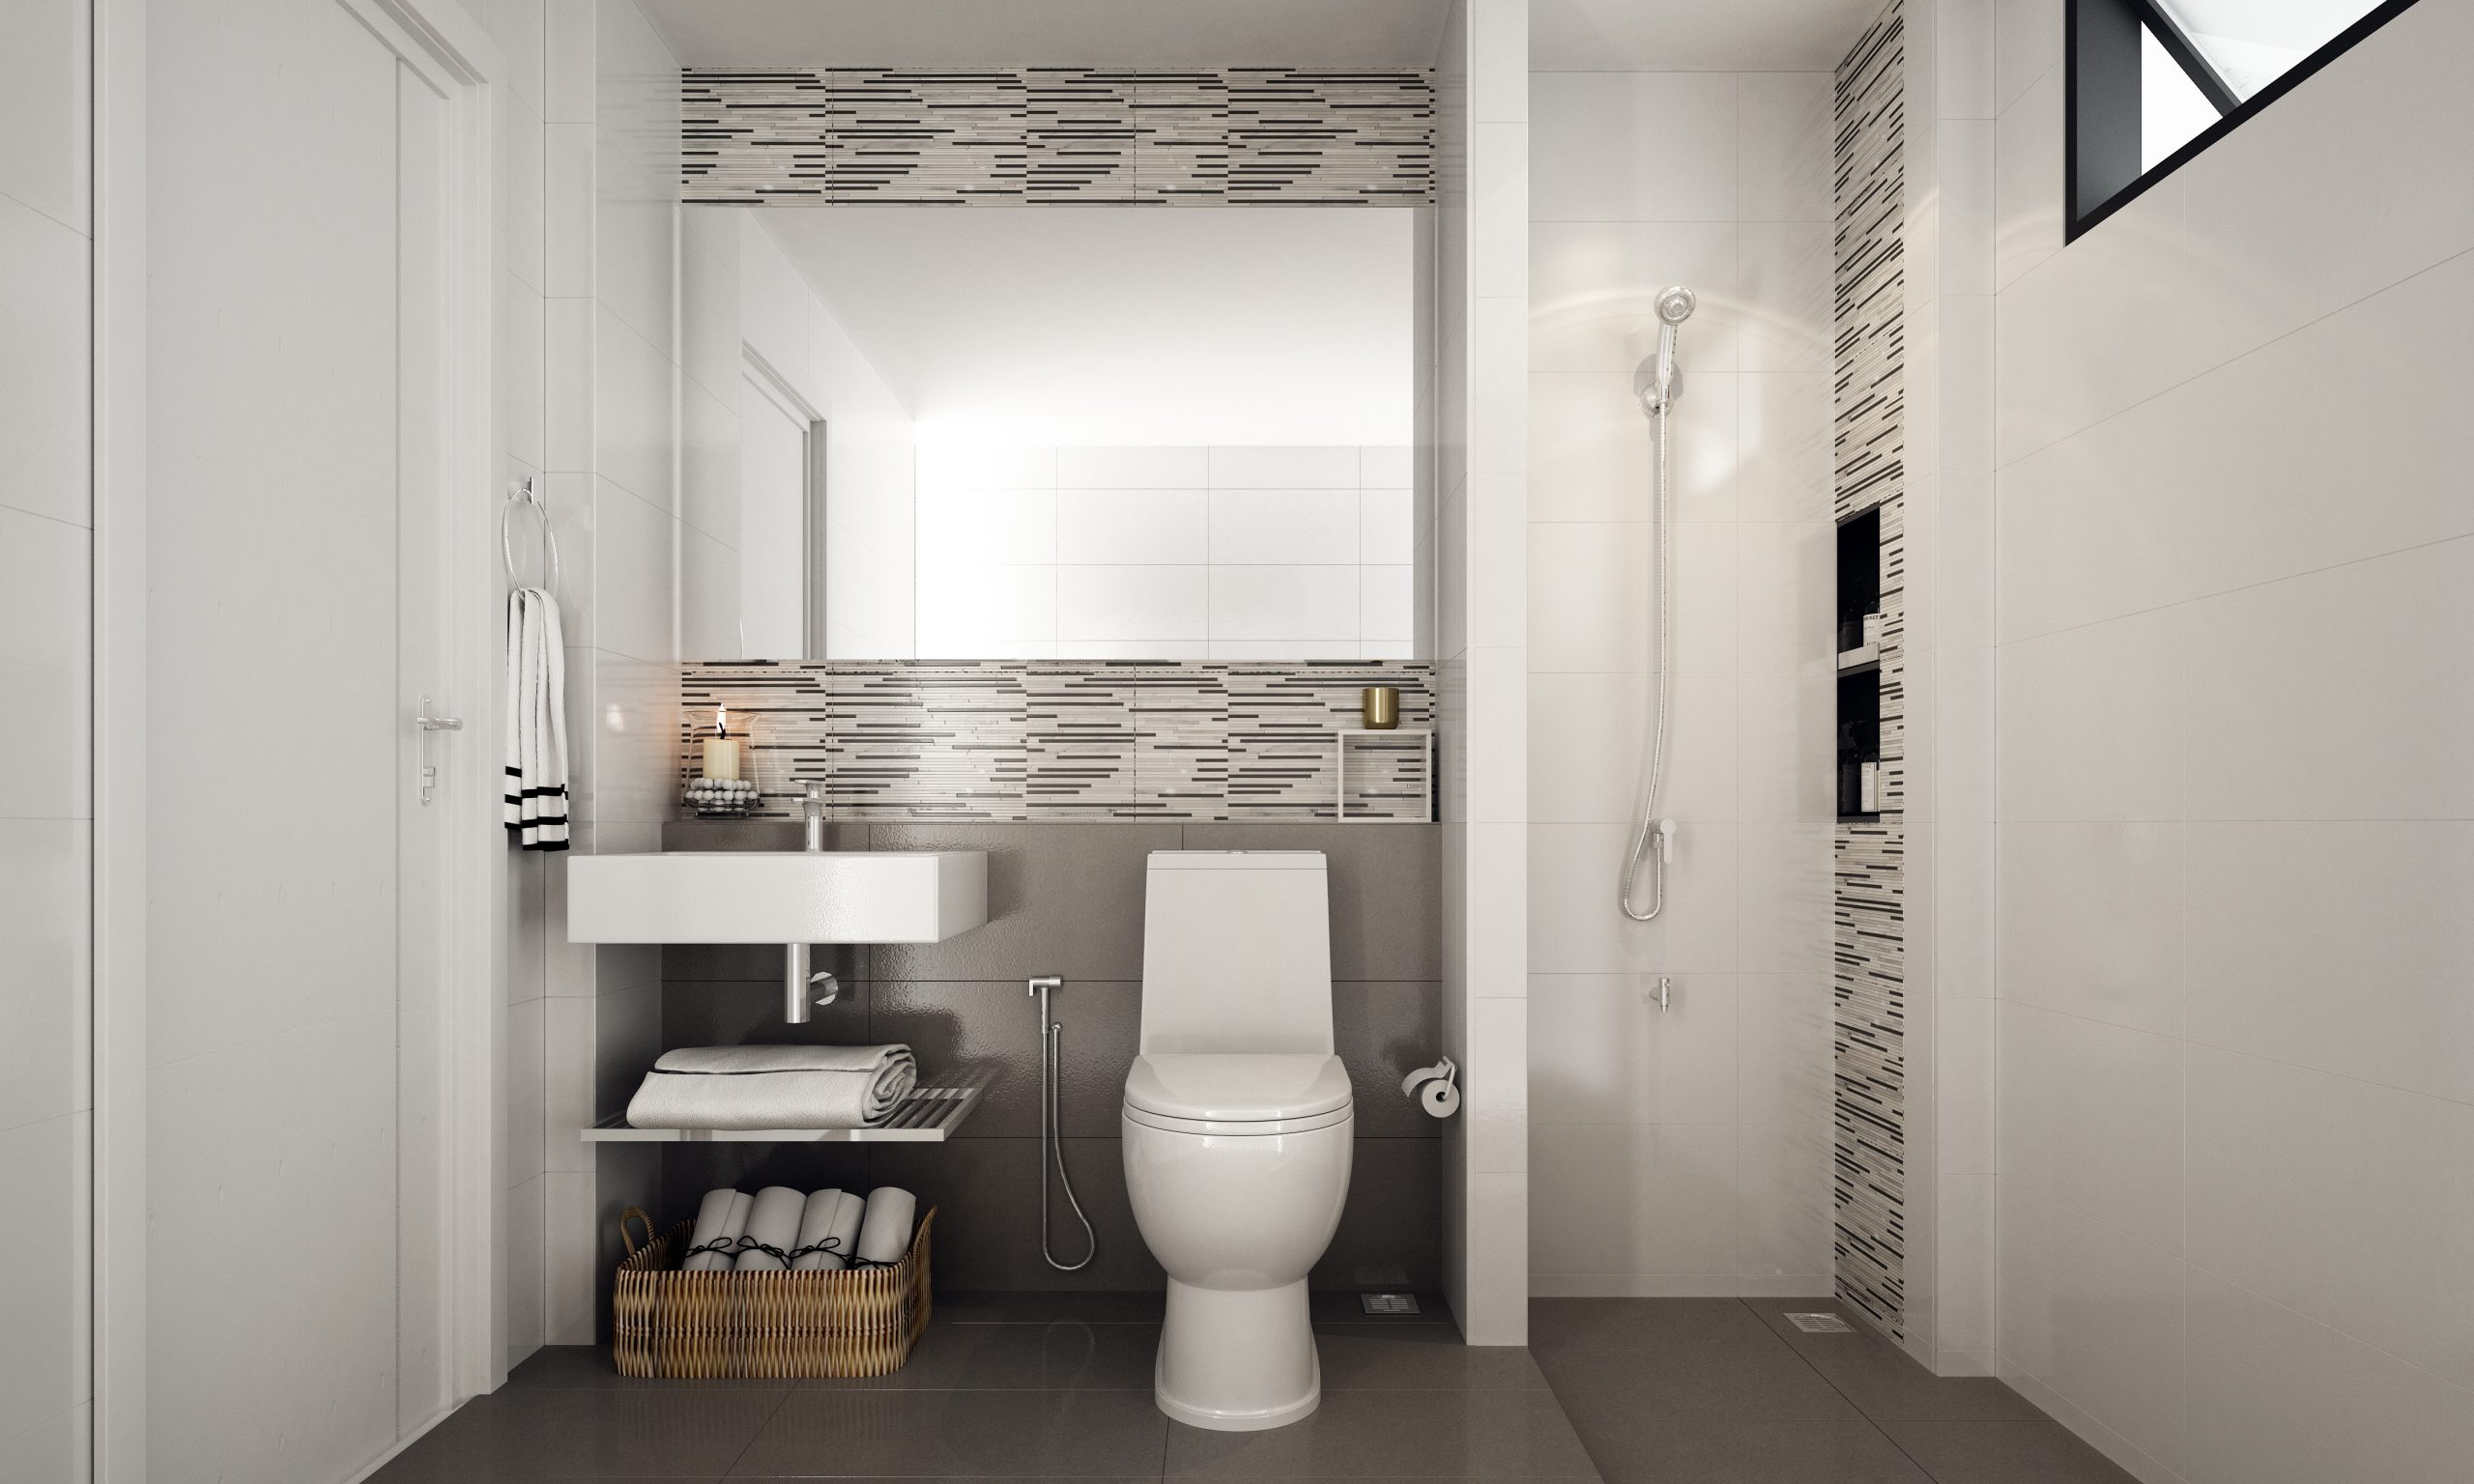 The inteior design idea of small toilet and tile pattern wall background